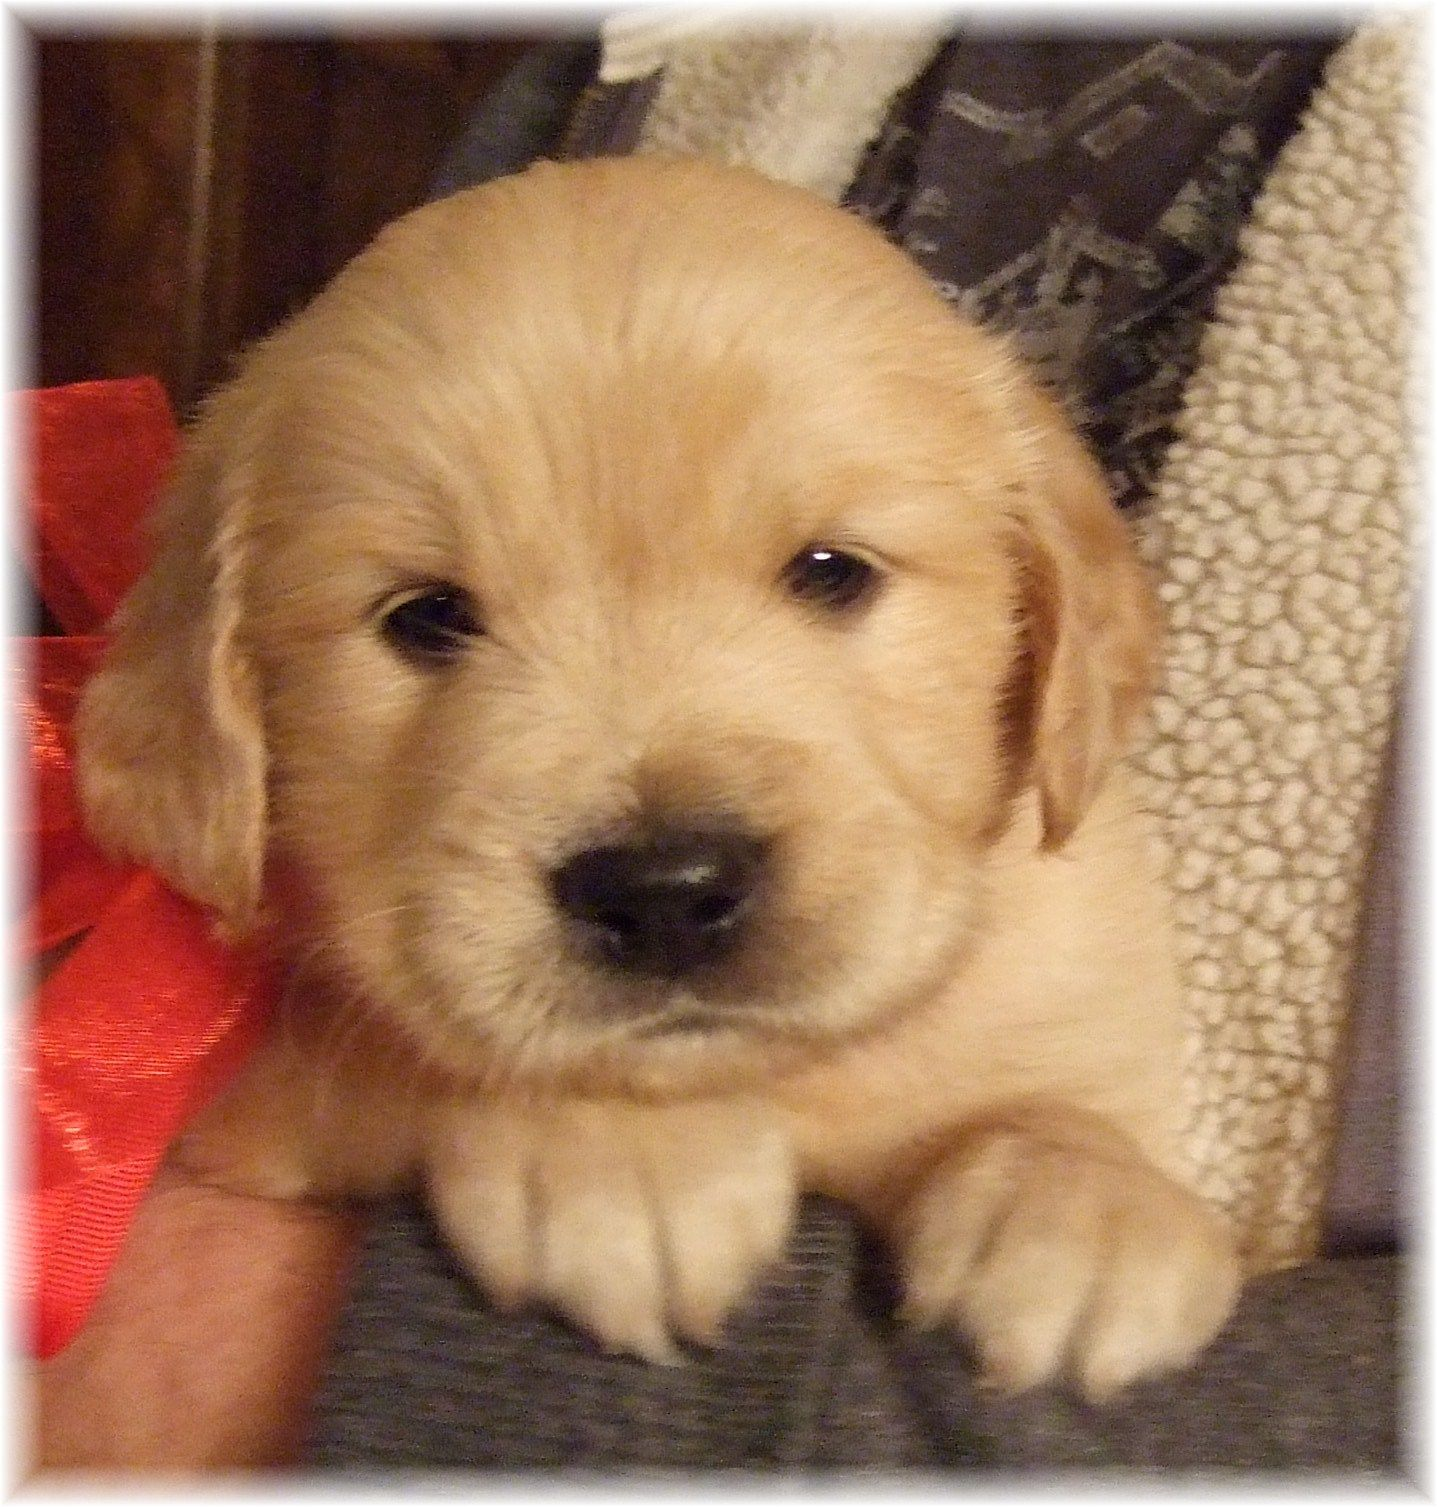 Akc Golden Retriever Puppies For Sale Georgia Puppies Dog